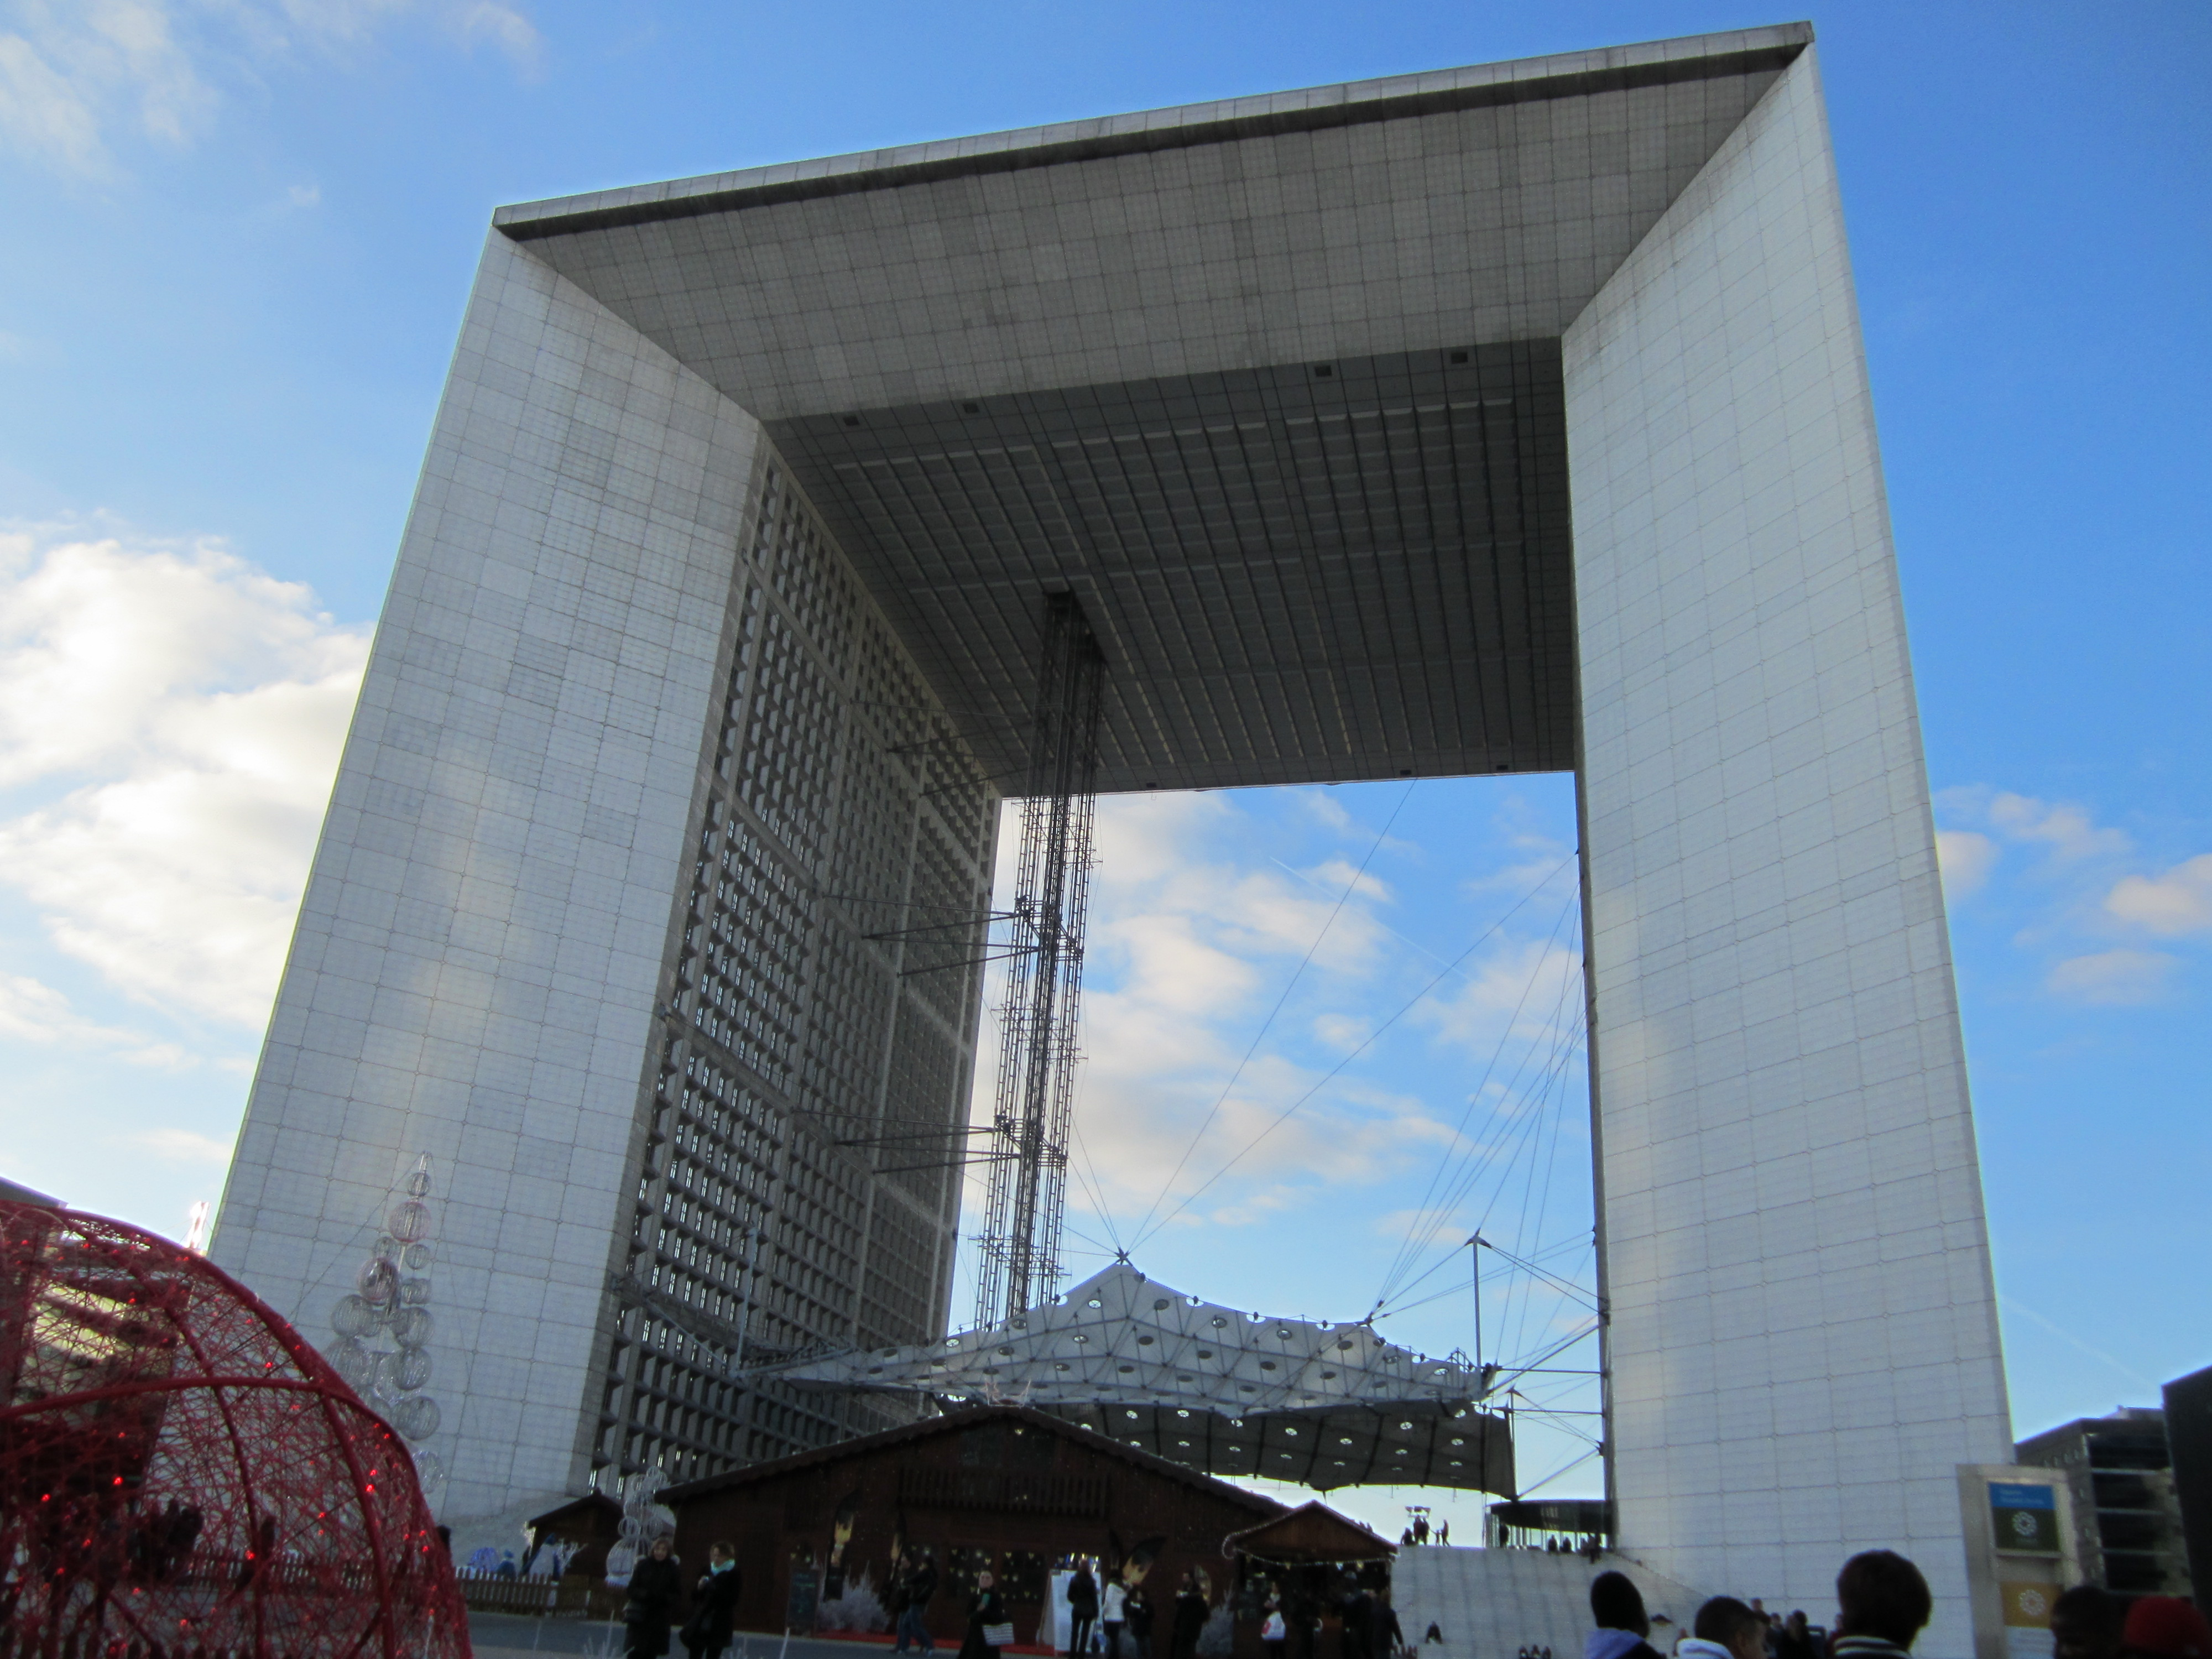 Grand Arc, Paris, France